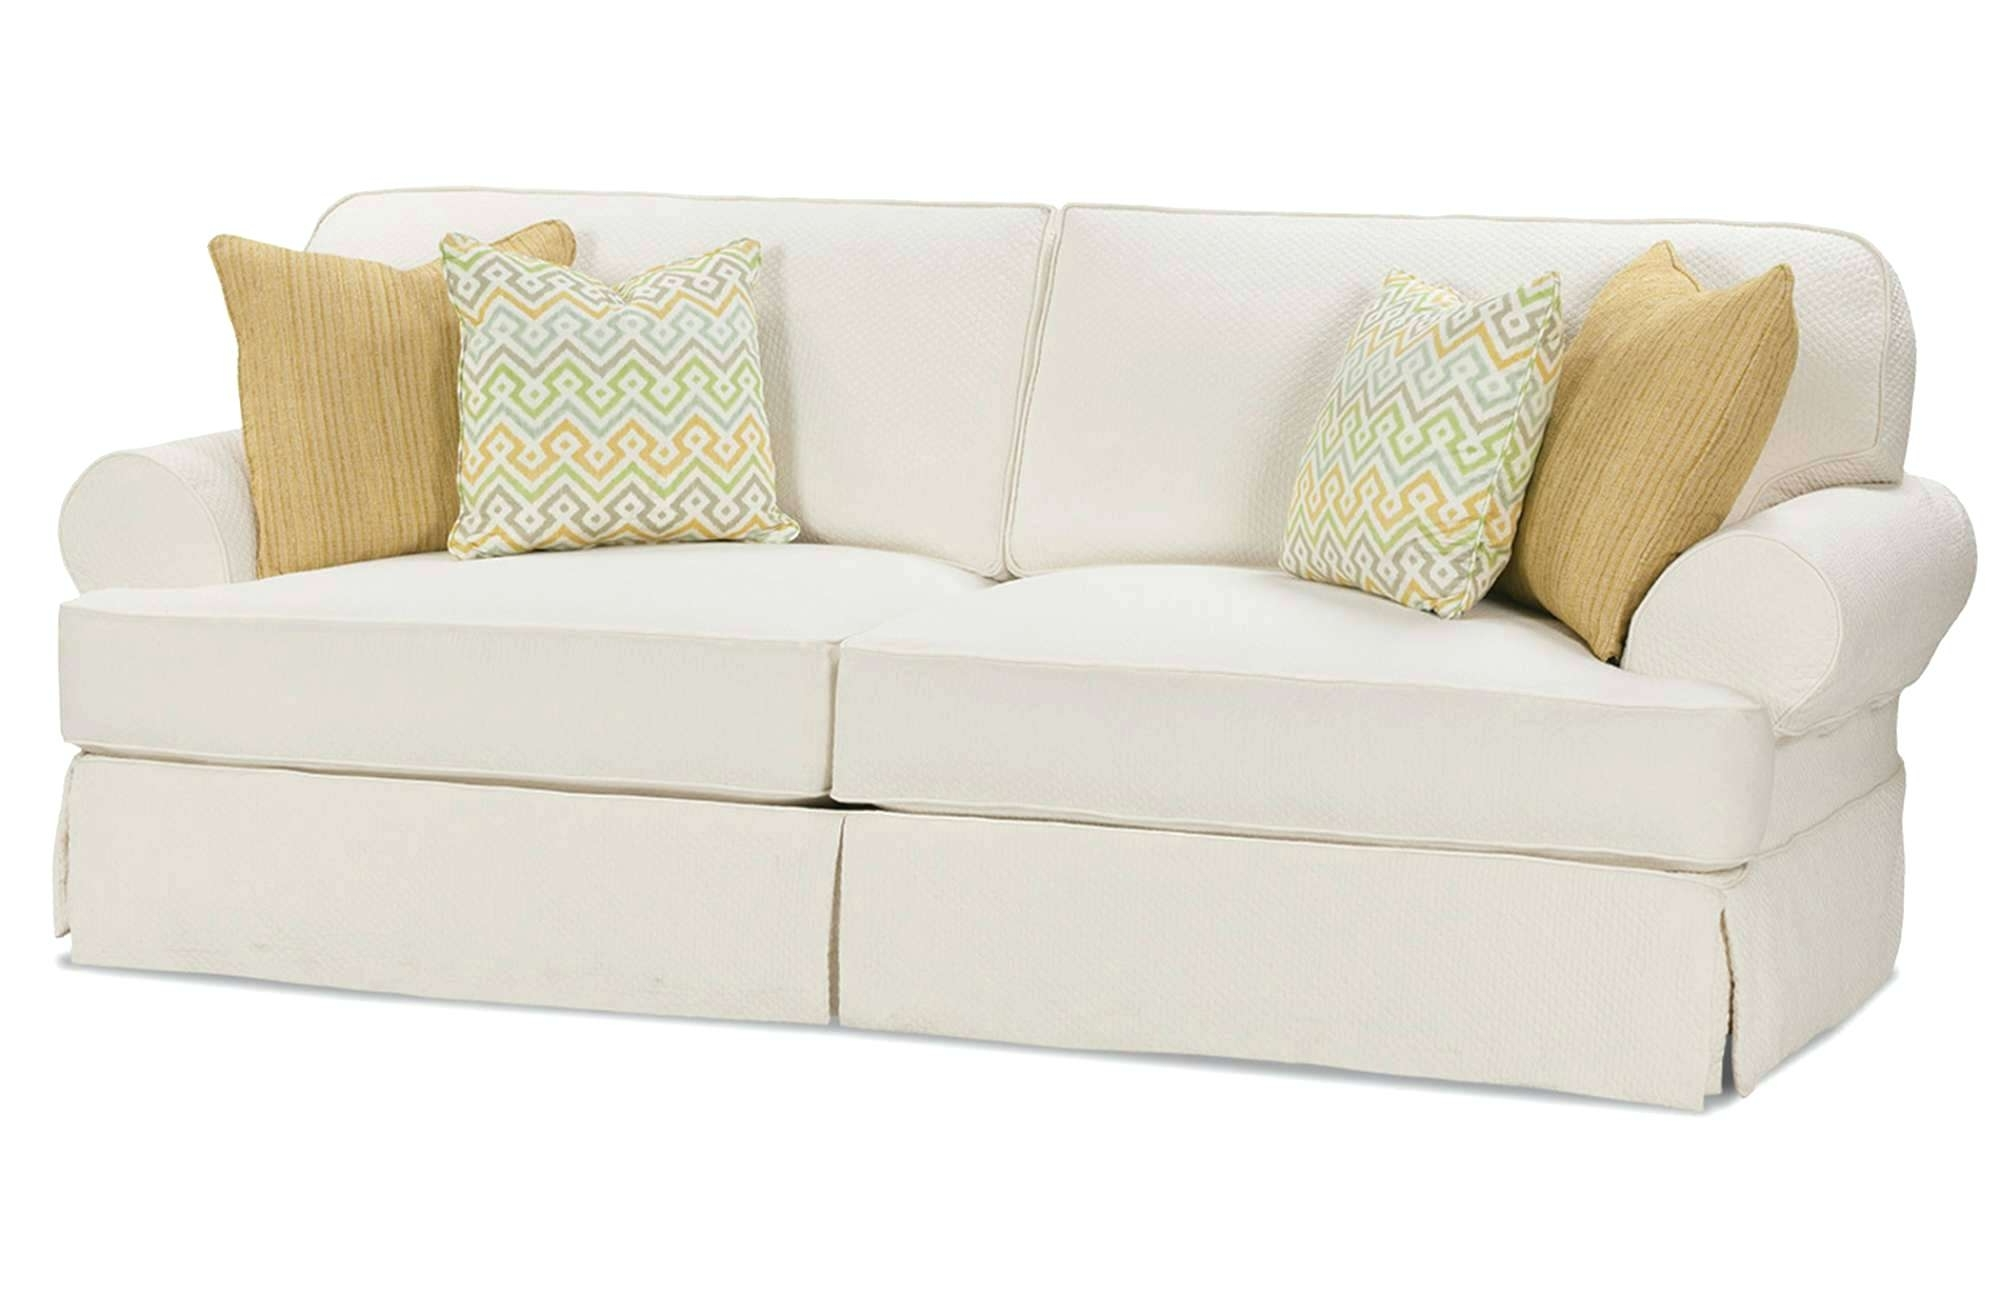 Most Popular Slipcovers Sofas Pertaining To Slipcover For Sectional – Biophilessurf (View 4 of 15)